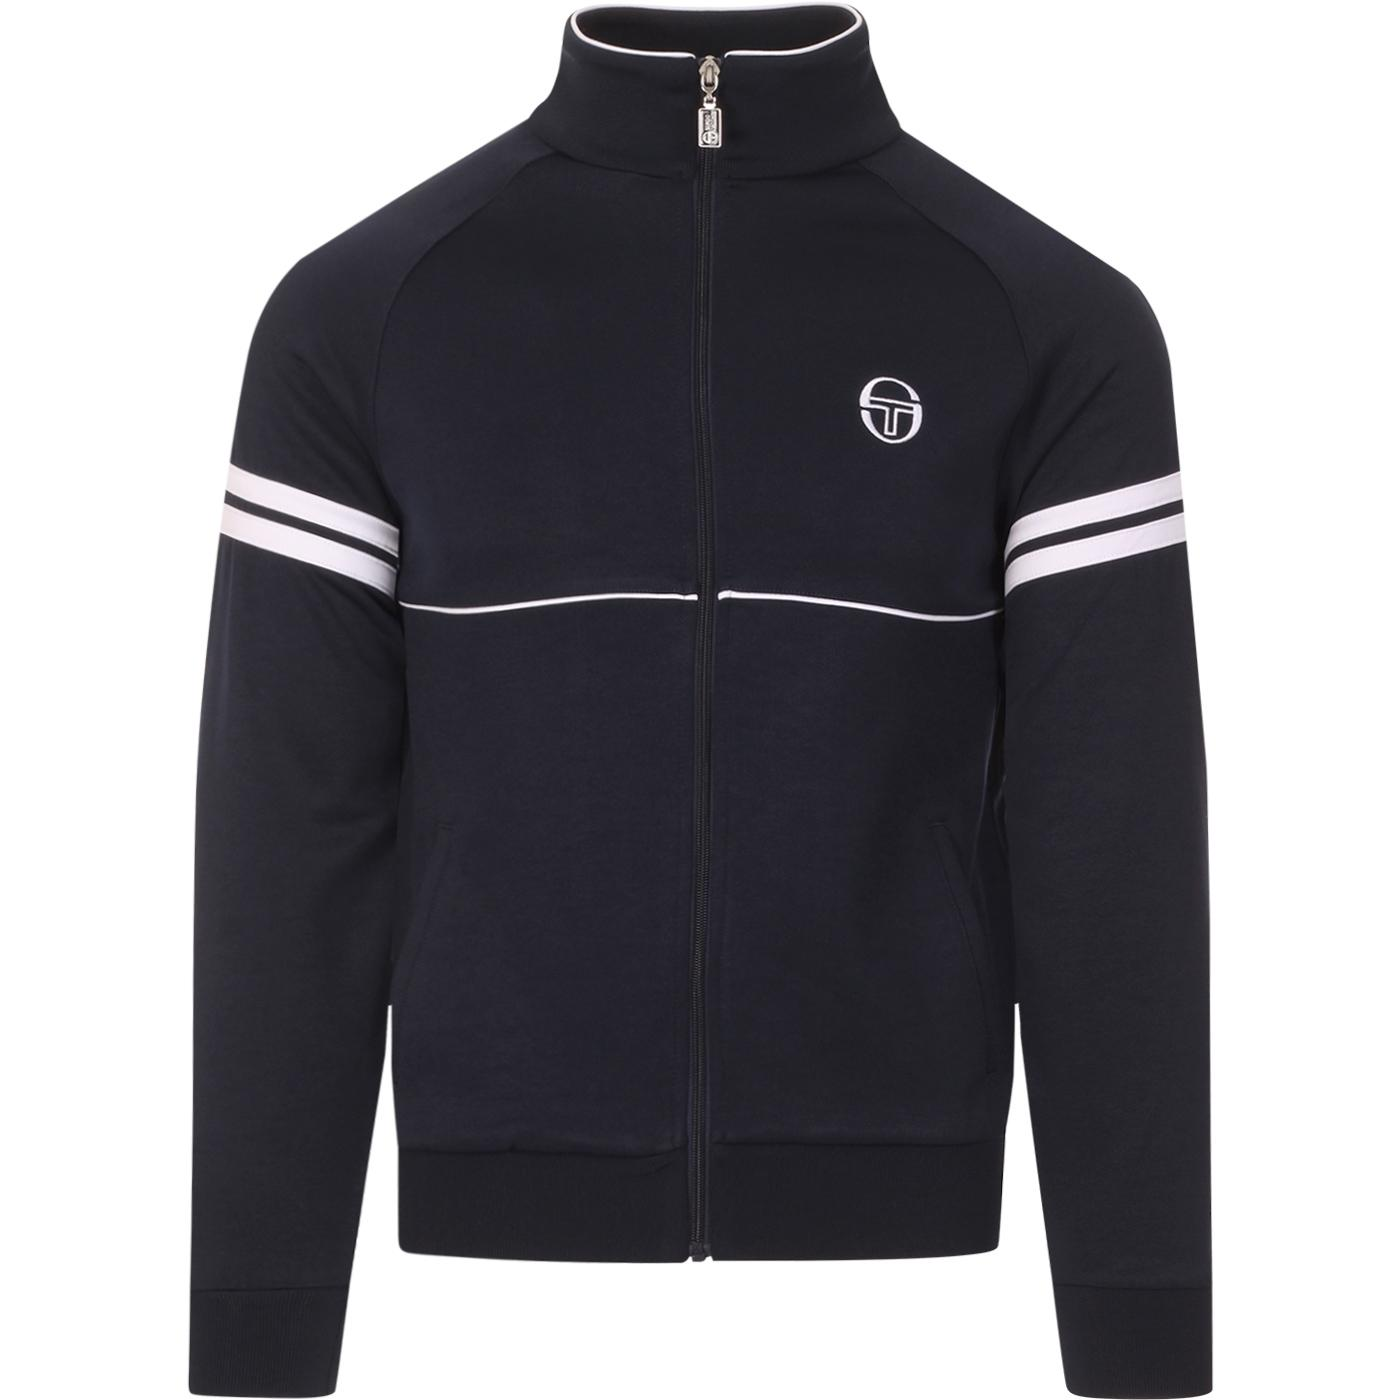 Orion SERGIO TACCHINI Retro 80s Track Top (N/W)